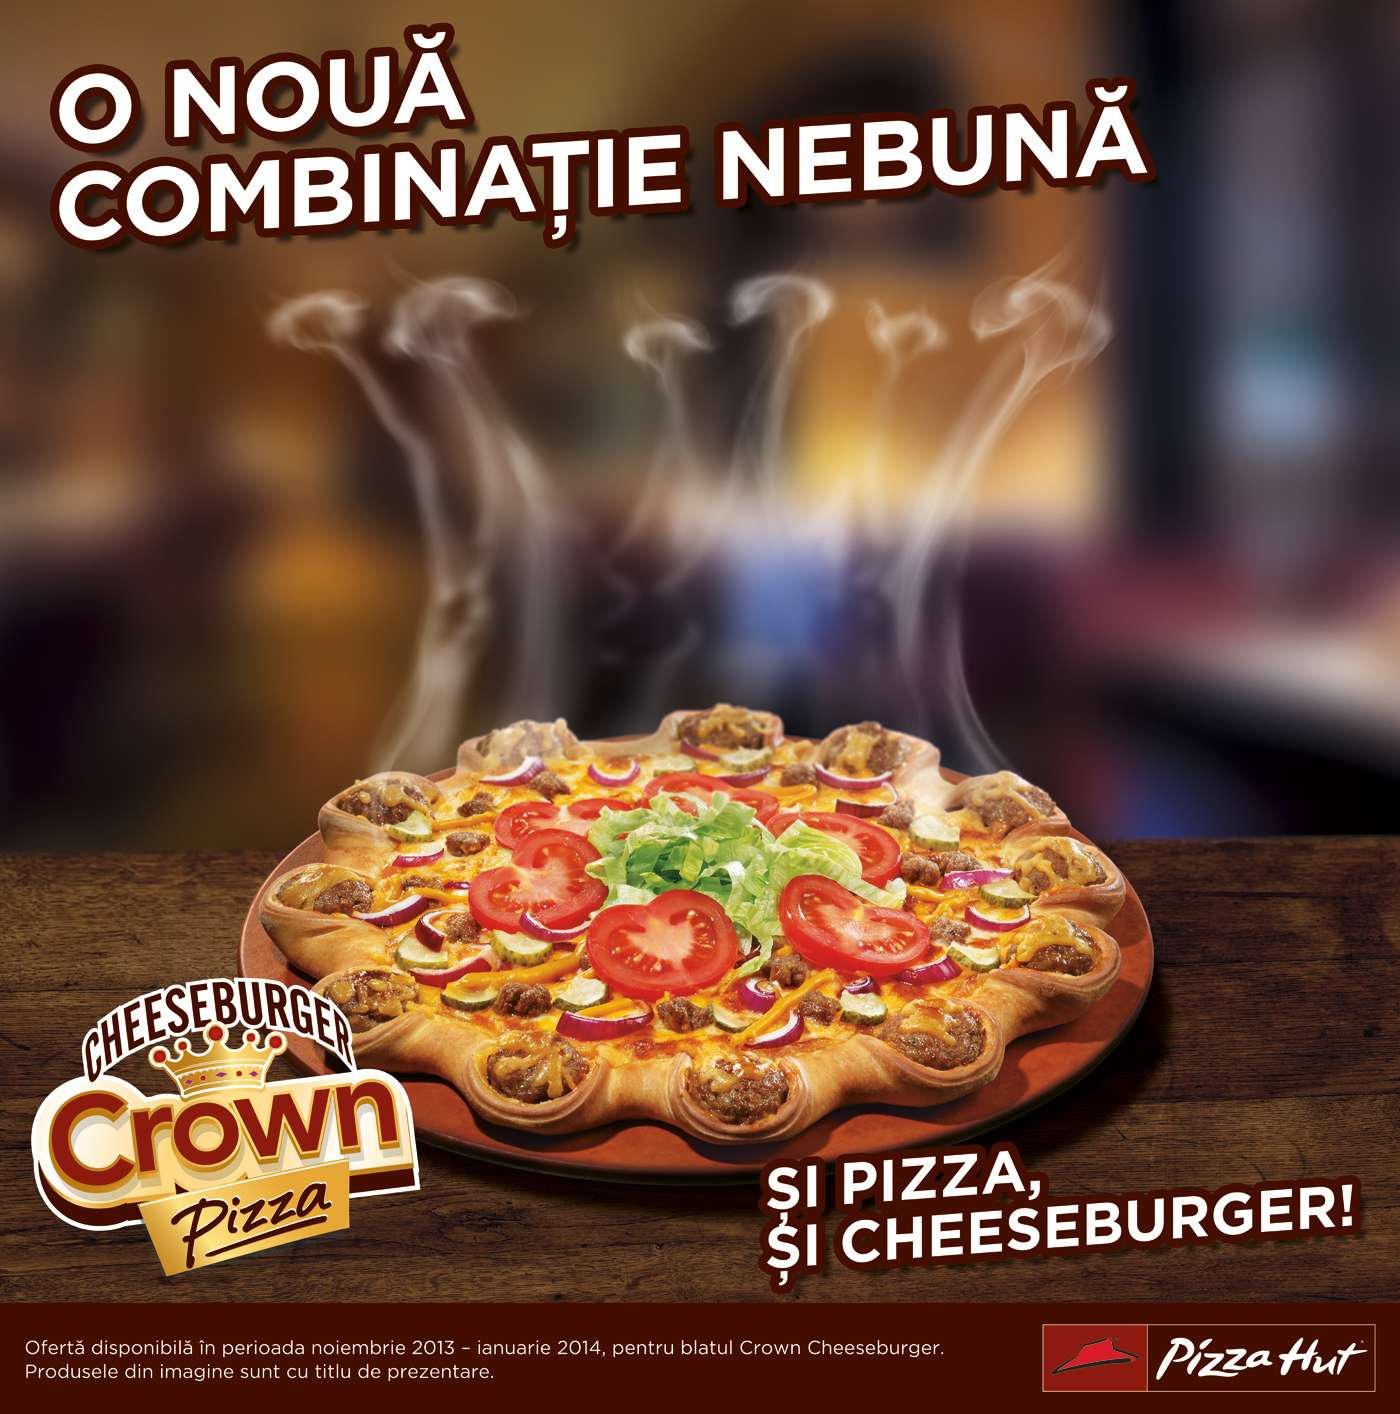 Crown Cheeseburger Pizza Hut